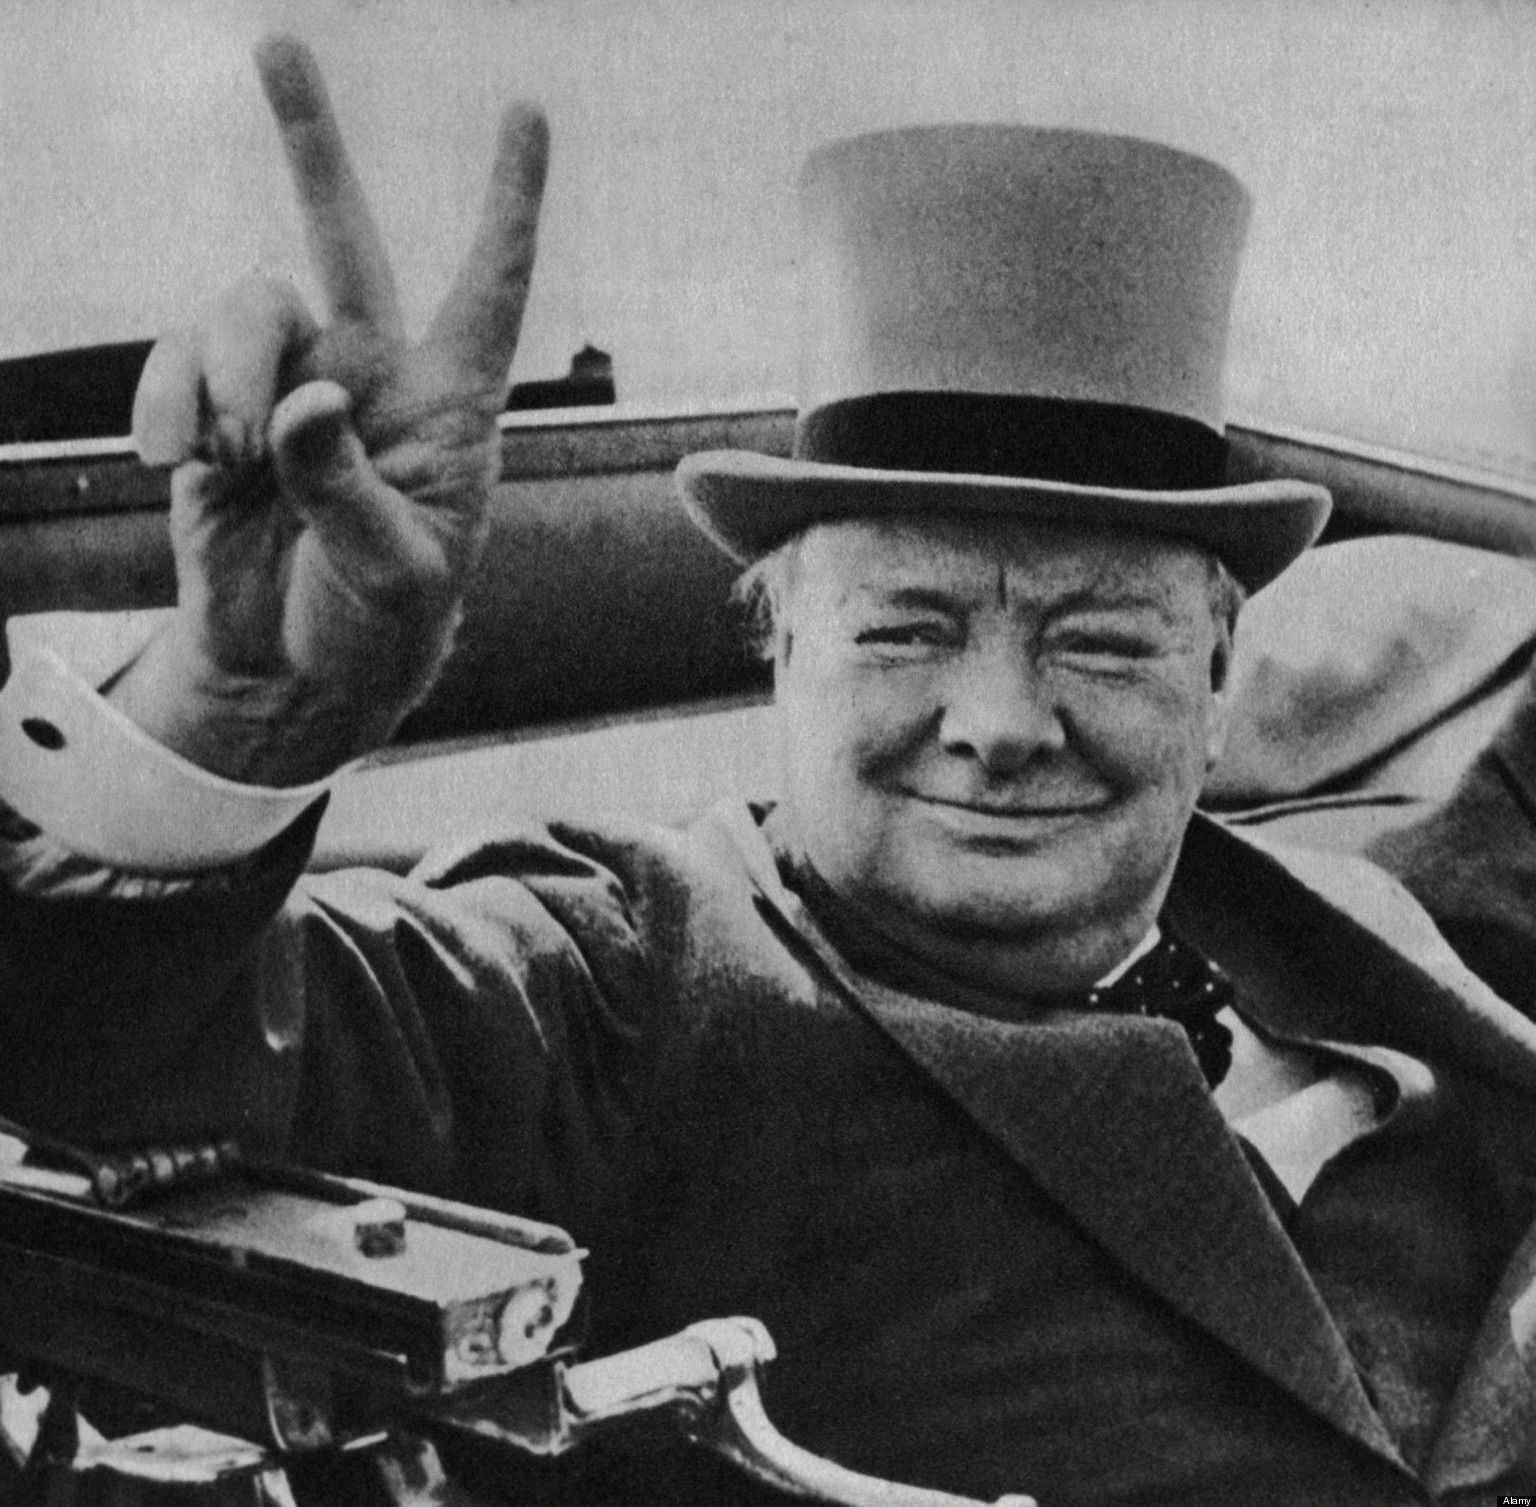 Winston Churchill, v-sign, v işareti, çörçil